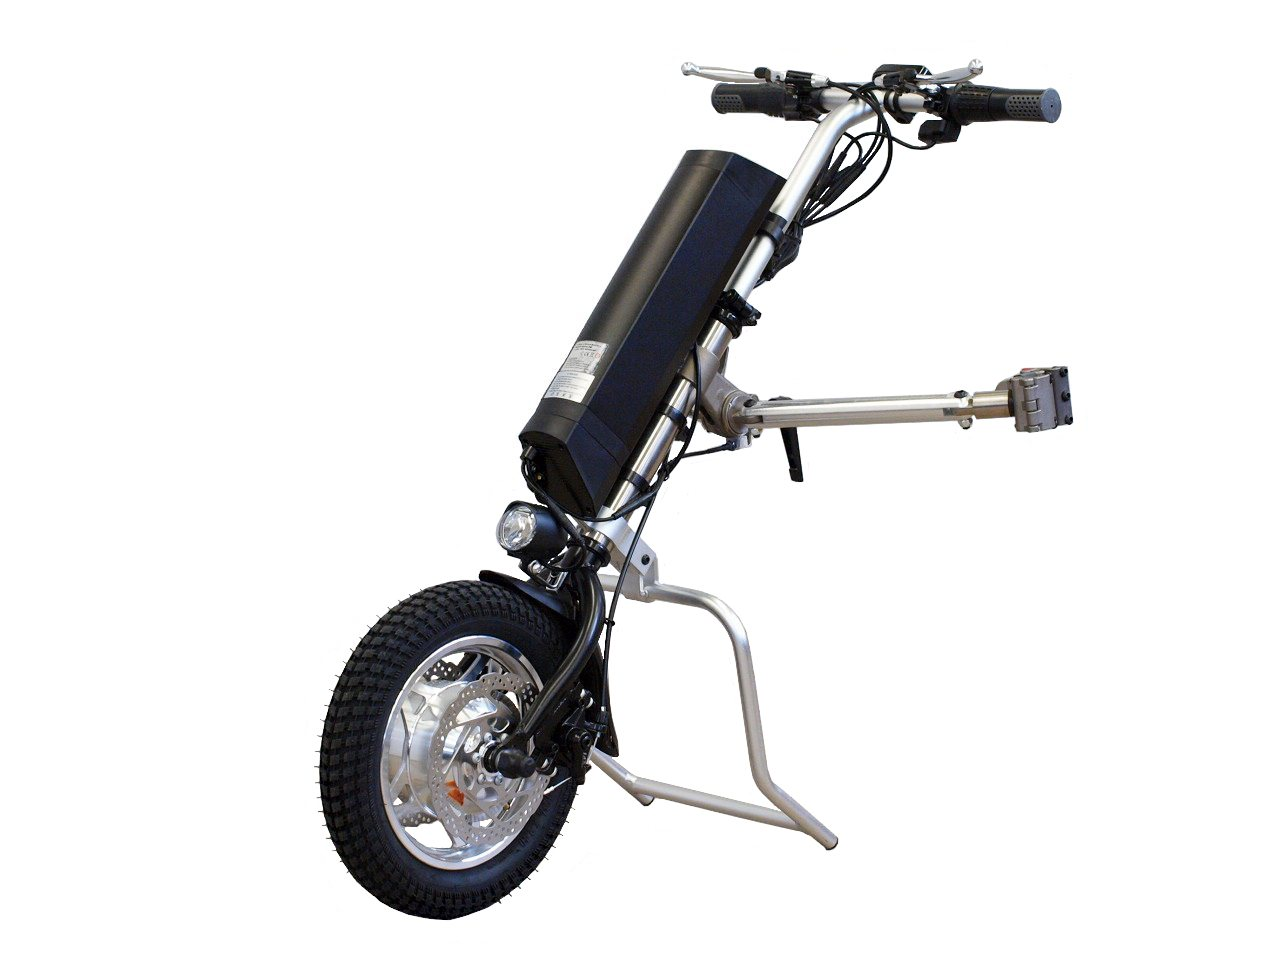 wheelchair trailer bouncy chair accessories 250w designed to turn hand driven